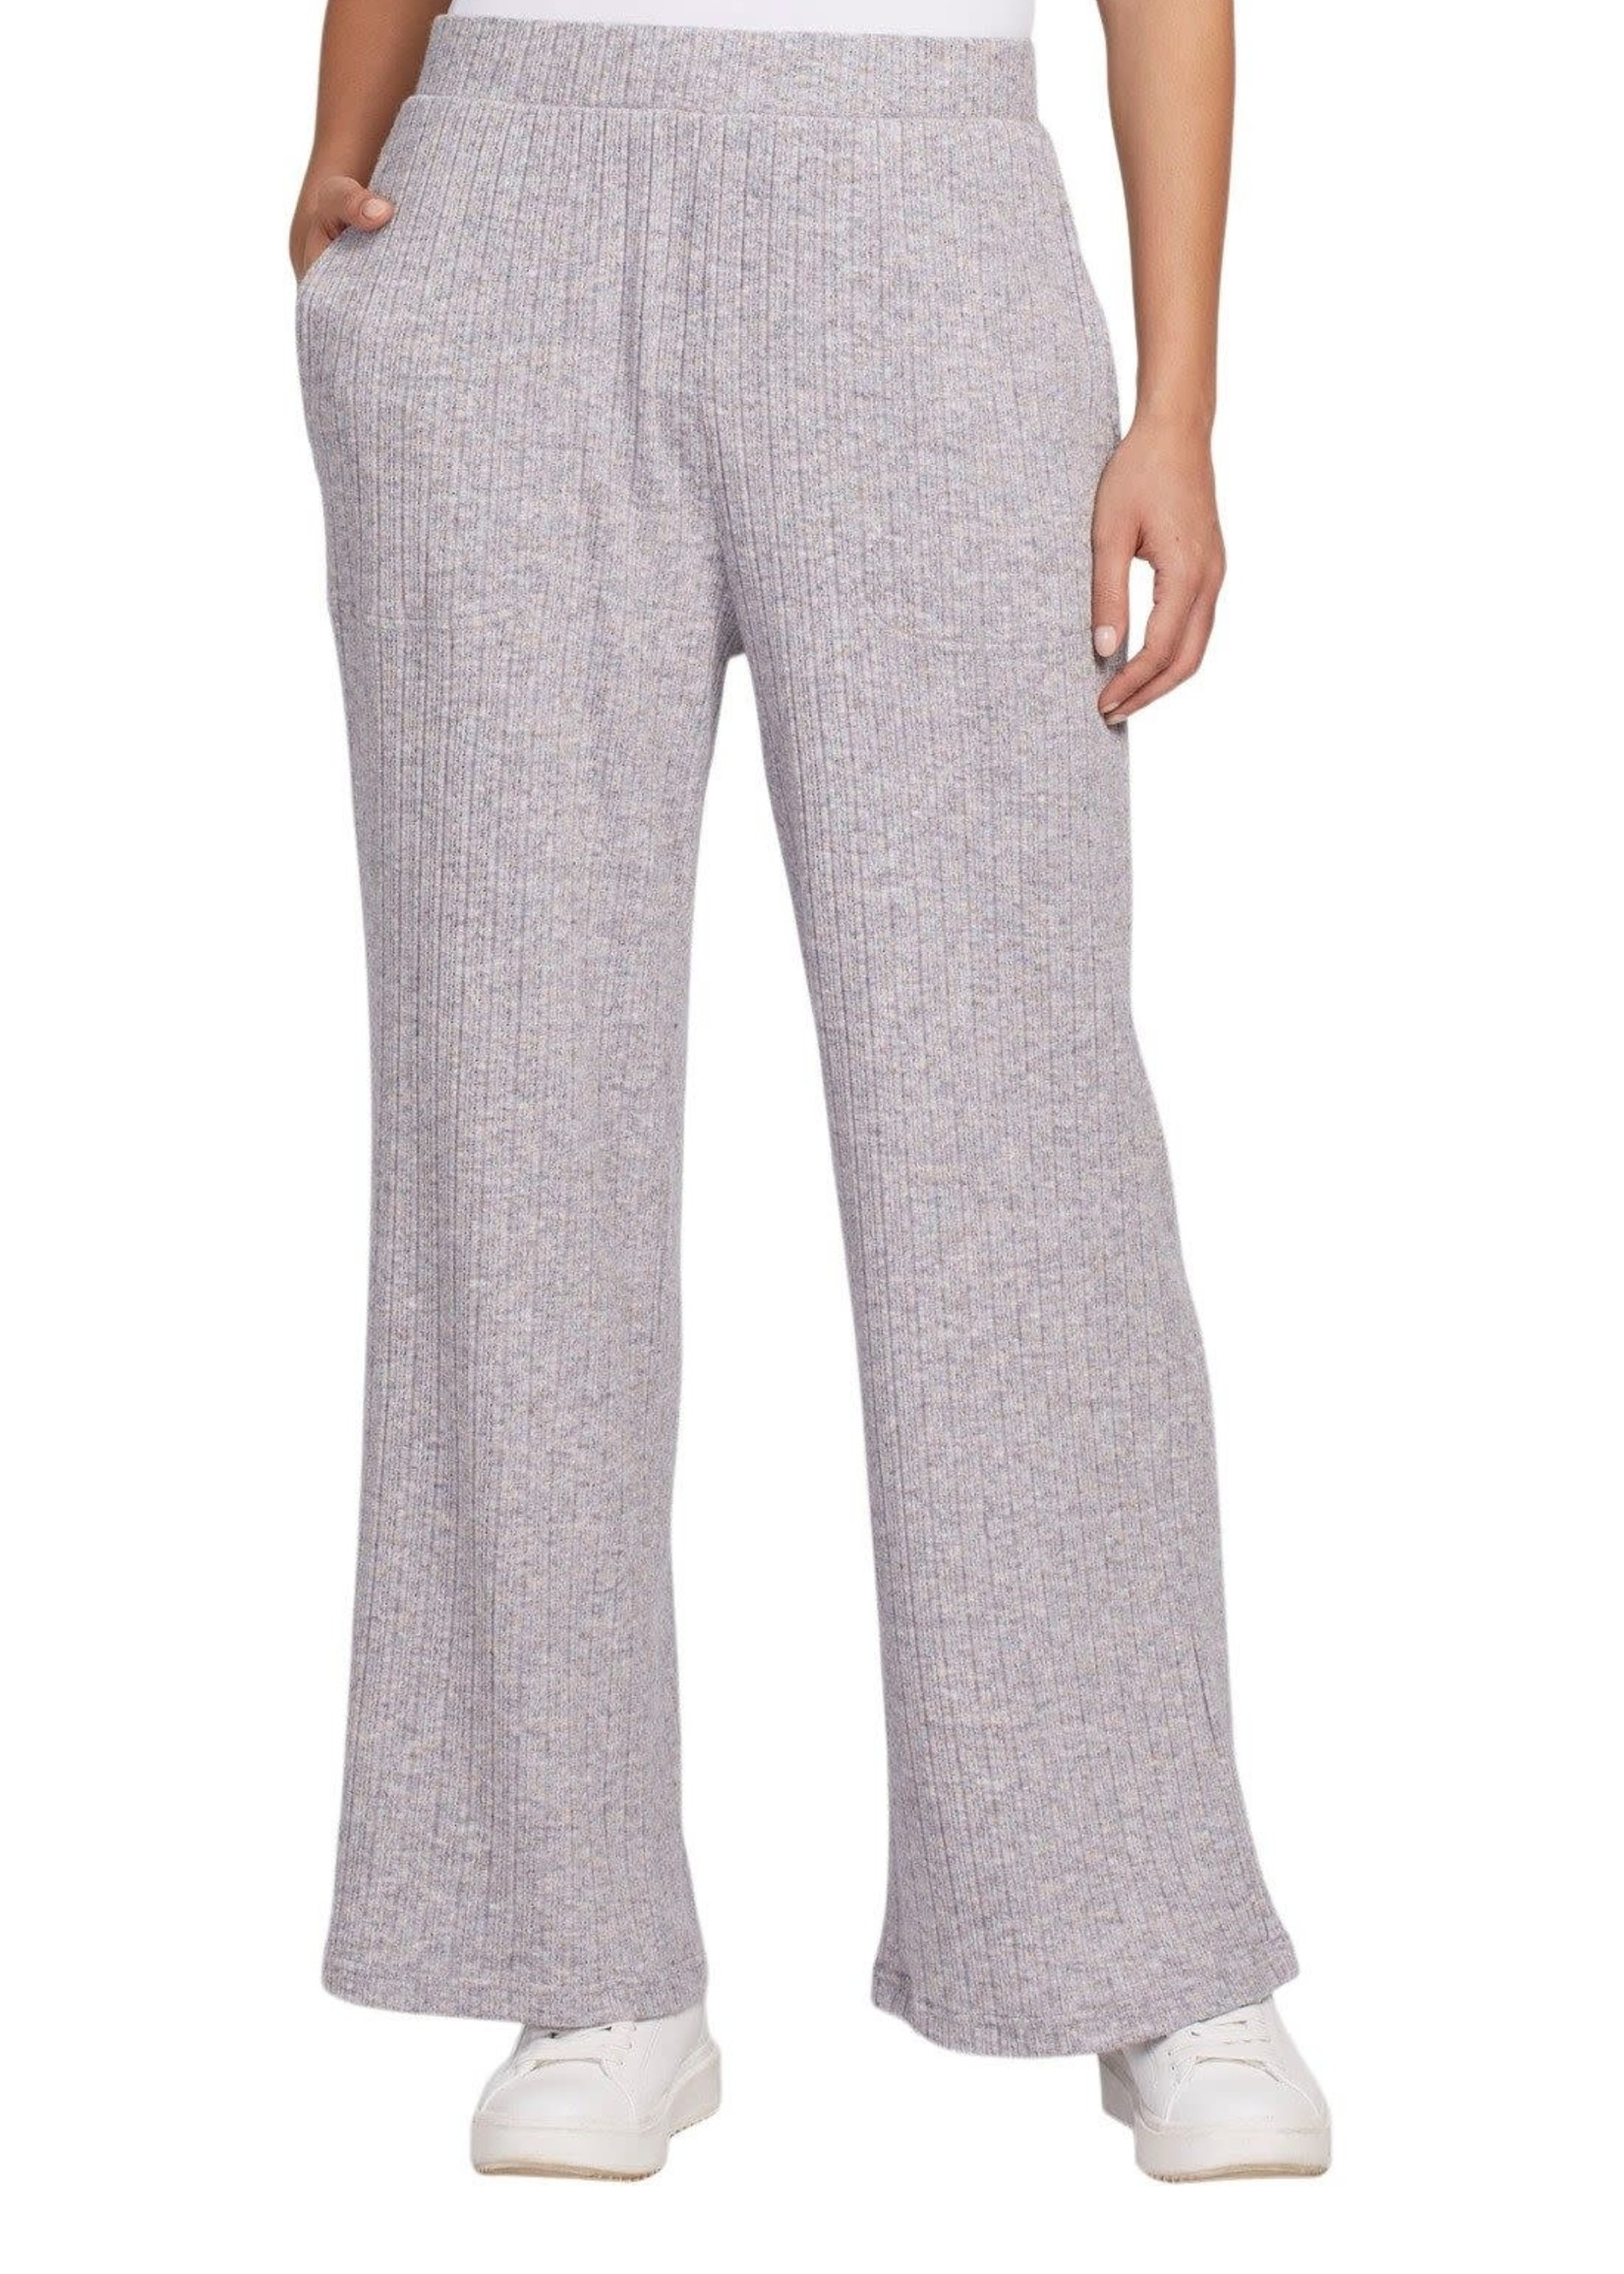 Tribal Tribal Pull On Ankle Pant w/Pocket Grey Mix